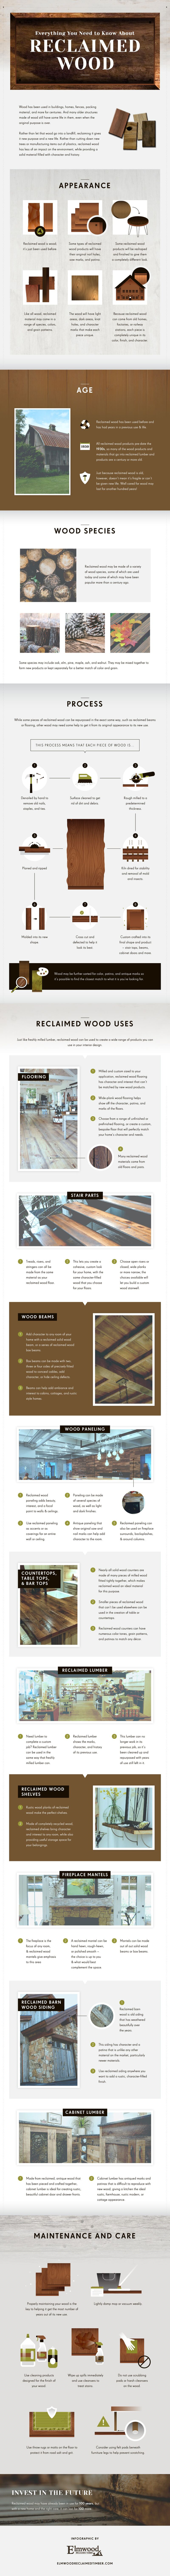 Reclaimed wood infographic